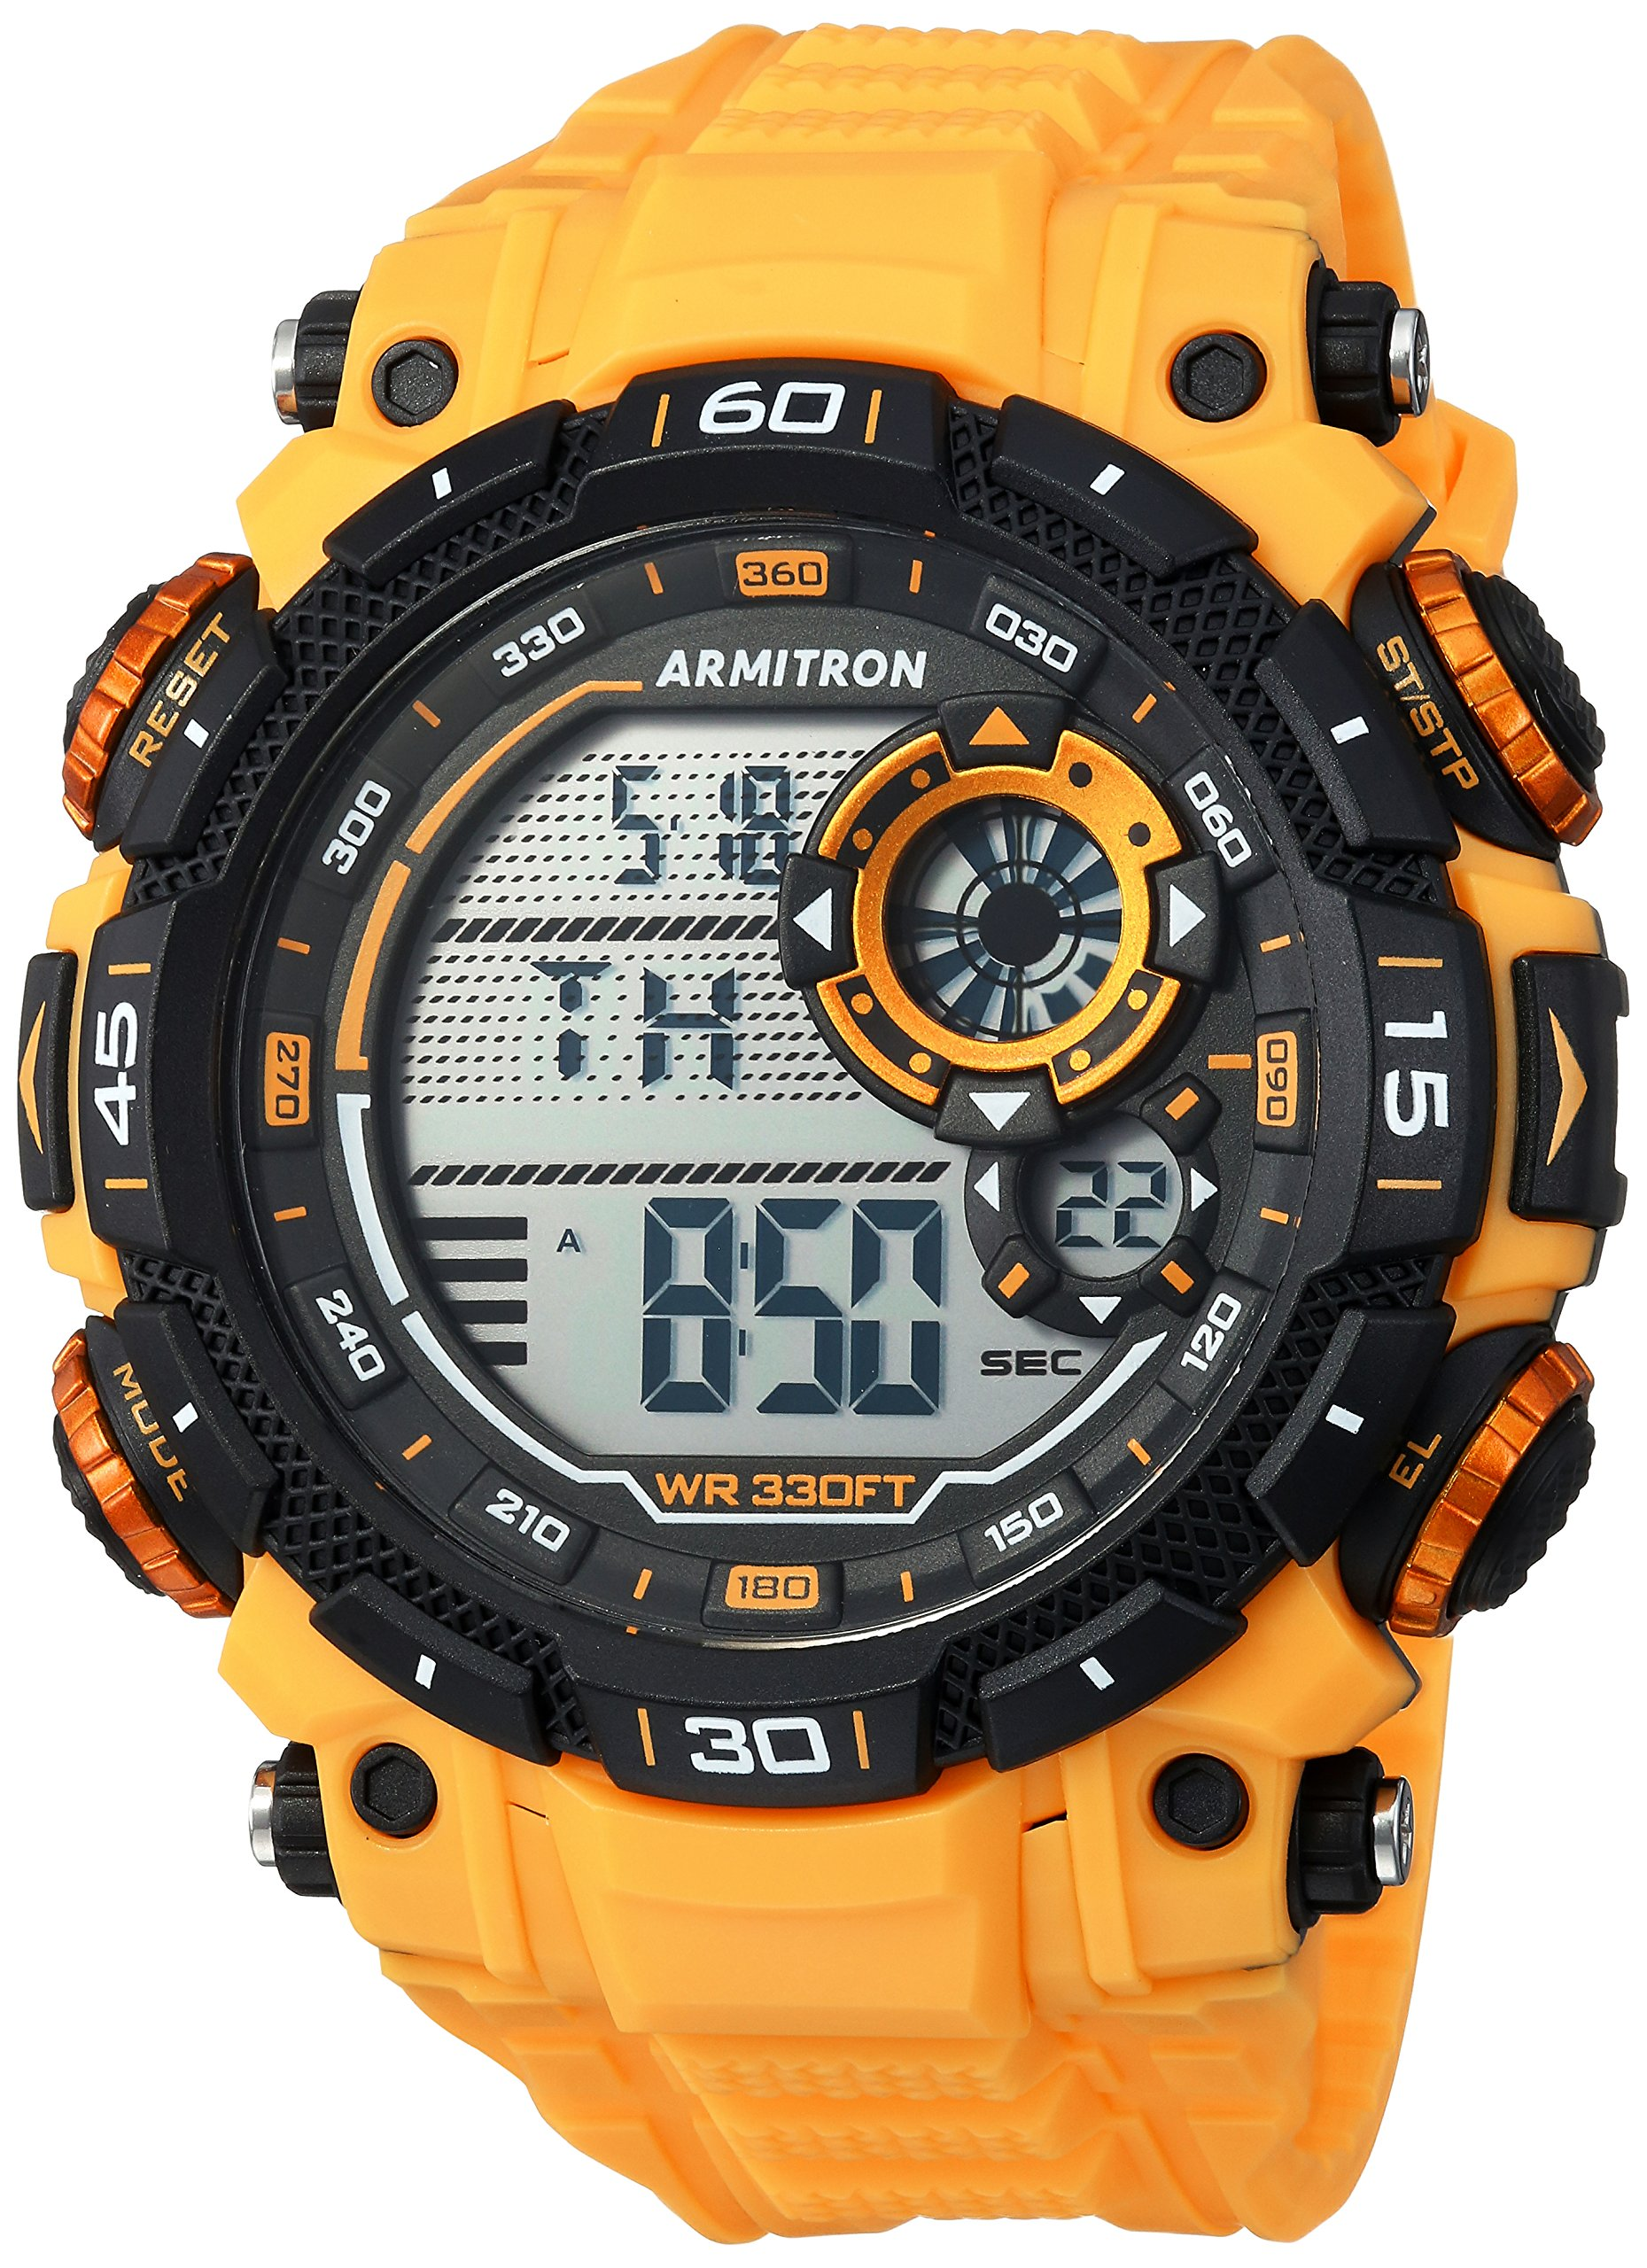 Armitron Sport Men's 40/8397YLW Digital Chronograph Yellow Resin Strap Watch by Armitron Sport